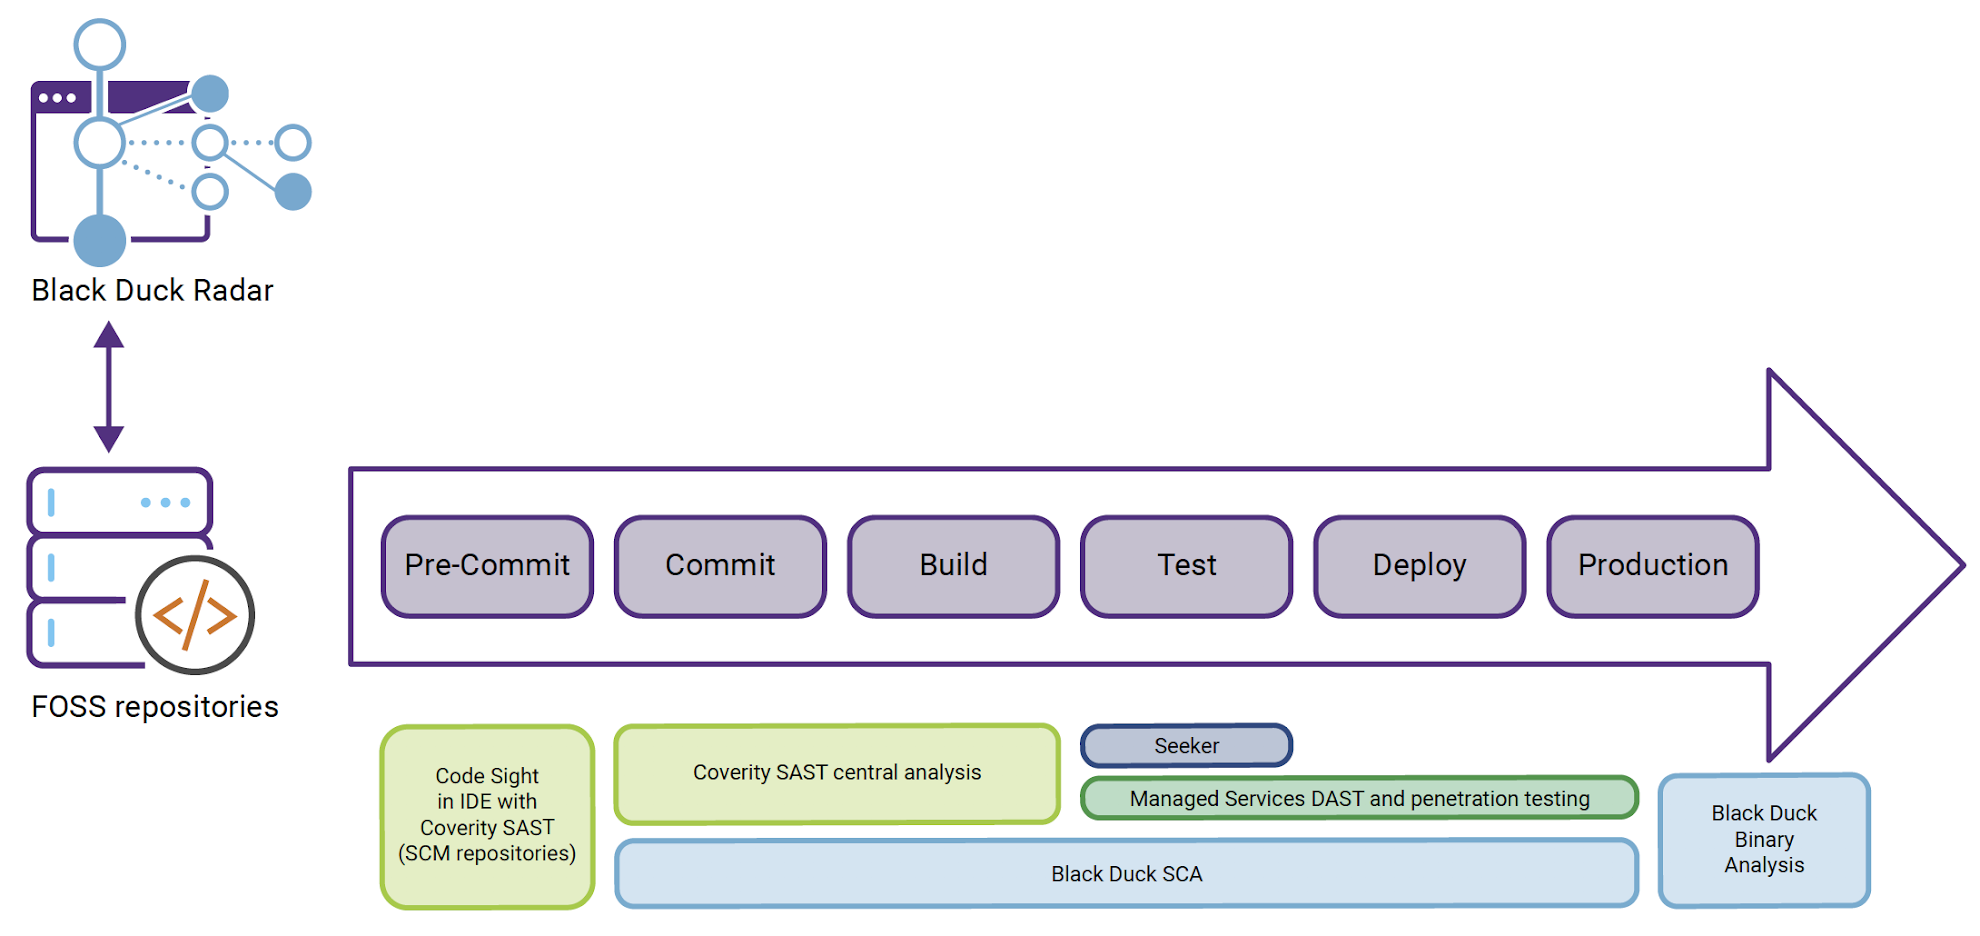 Figure 3. How Synopsys products fit into the SDLC